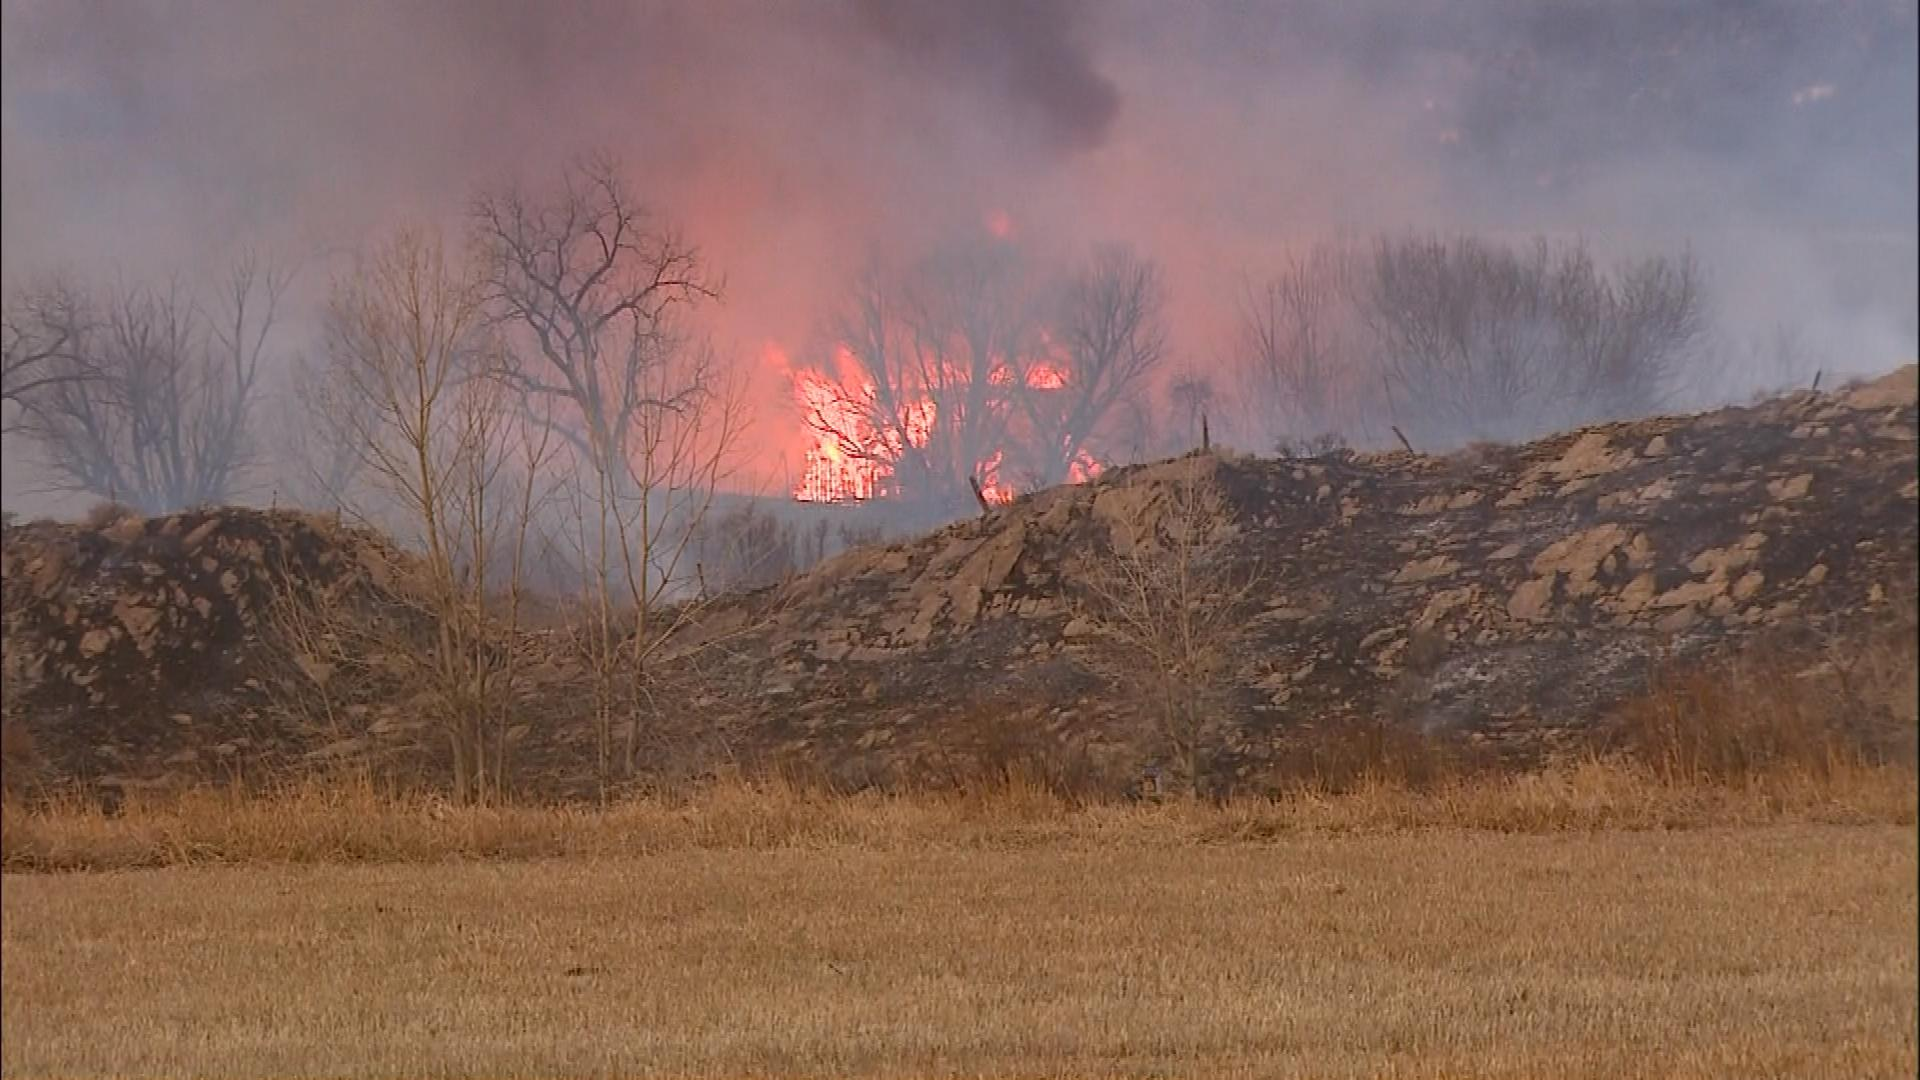 A wildfire west of Longmont burned several structures and forced evacuations on Feb. 10, 2017. (credit: CBS)